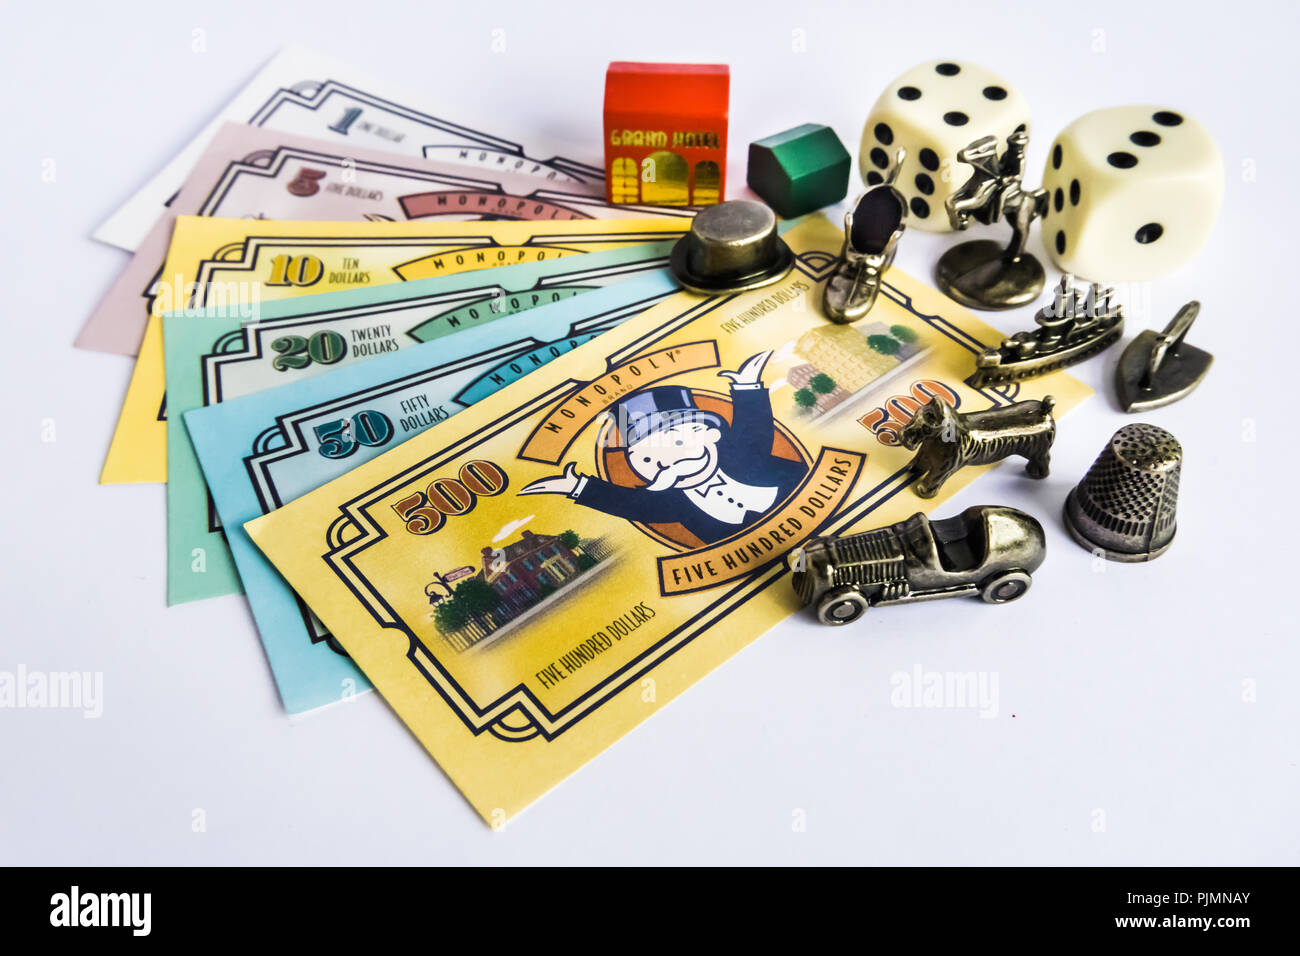 Monopoly Property Trading board game from Parker Brothers. The classic real estate trading game from Parker Brothers. Stock Photo